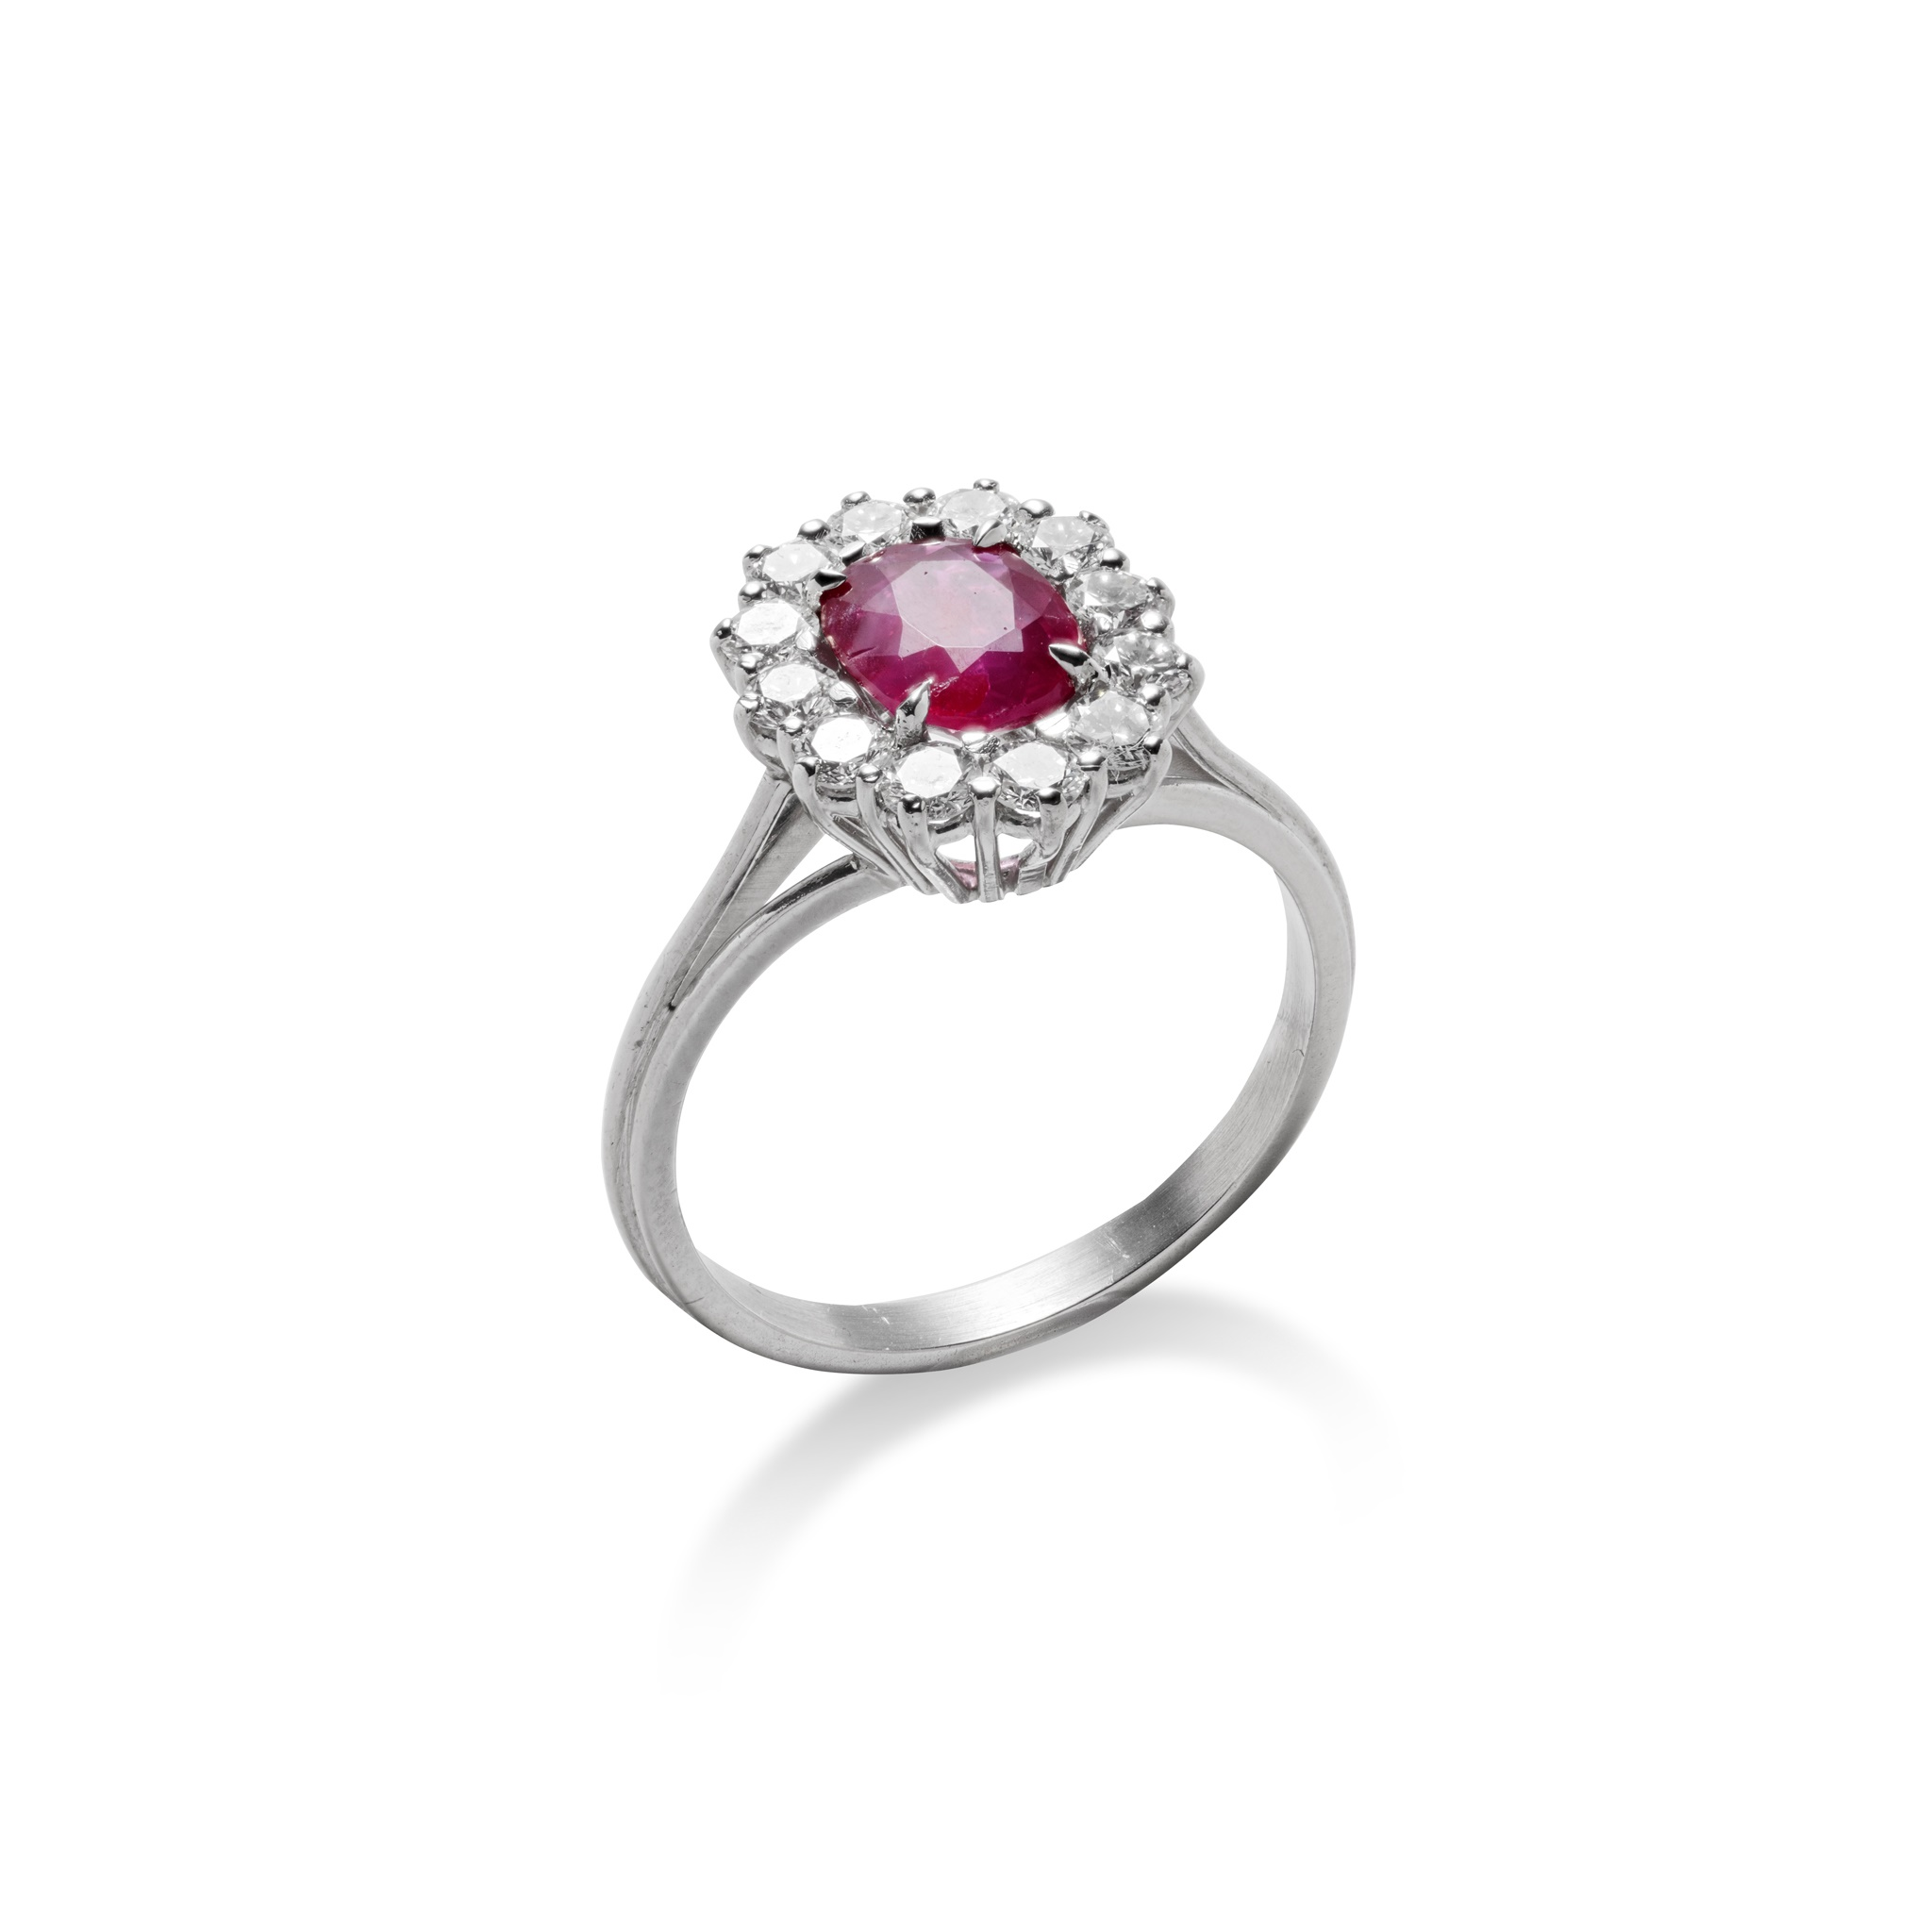 A ruby and diamond ring The oval-cut ruby, weighing 1.13 carats, within a brilliant-cut diamond